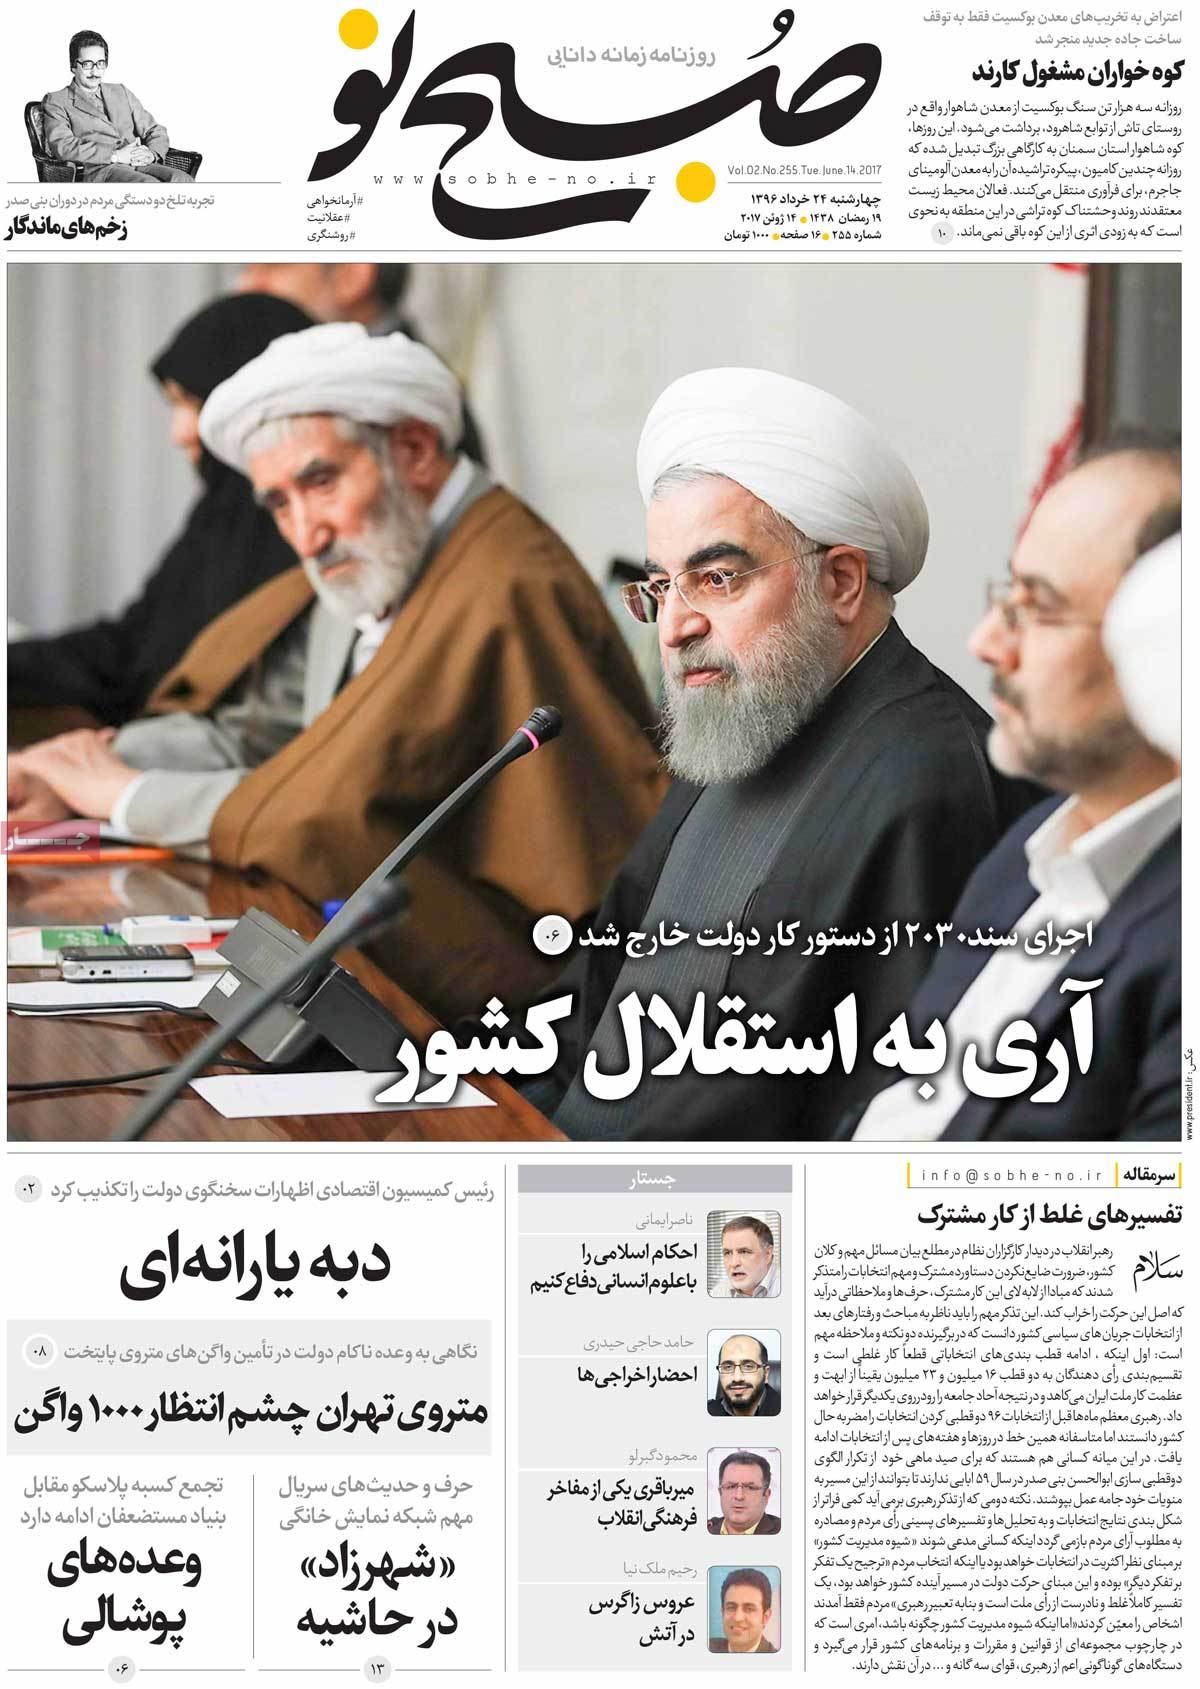 A Look at Iranian Newspaper Front Pages on June 14 -sobhe no